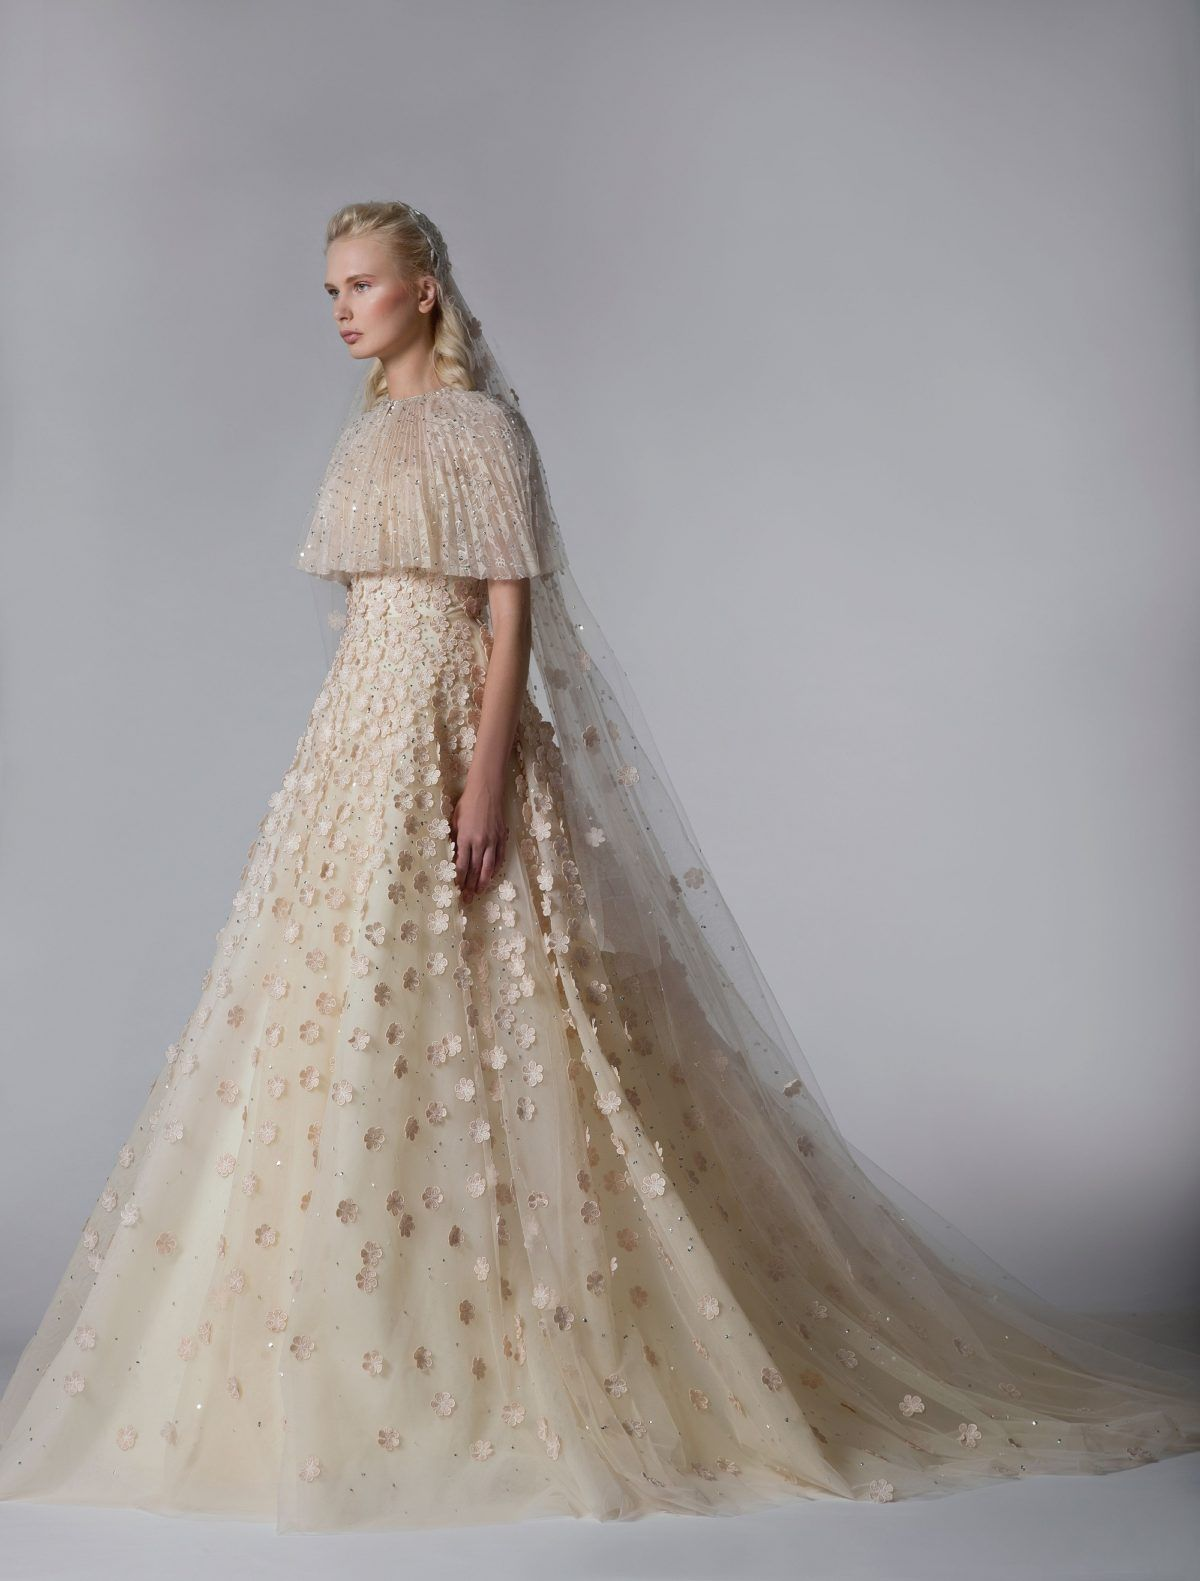 2b03d9fba9fed Georges Hobeika - Bridal Autumn-Winter 2019/20 collection Bridal Collection  | Wedding Dresses